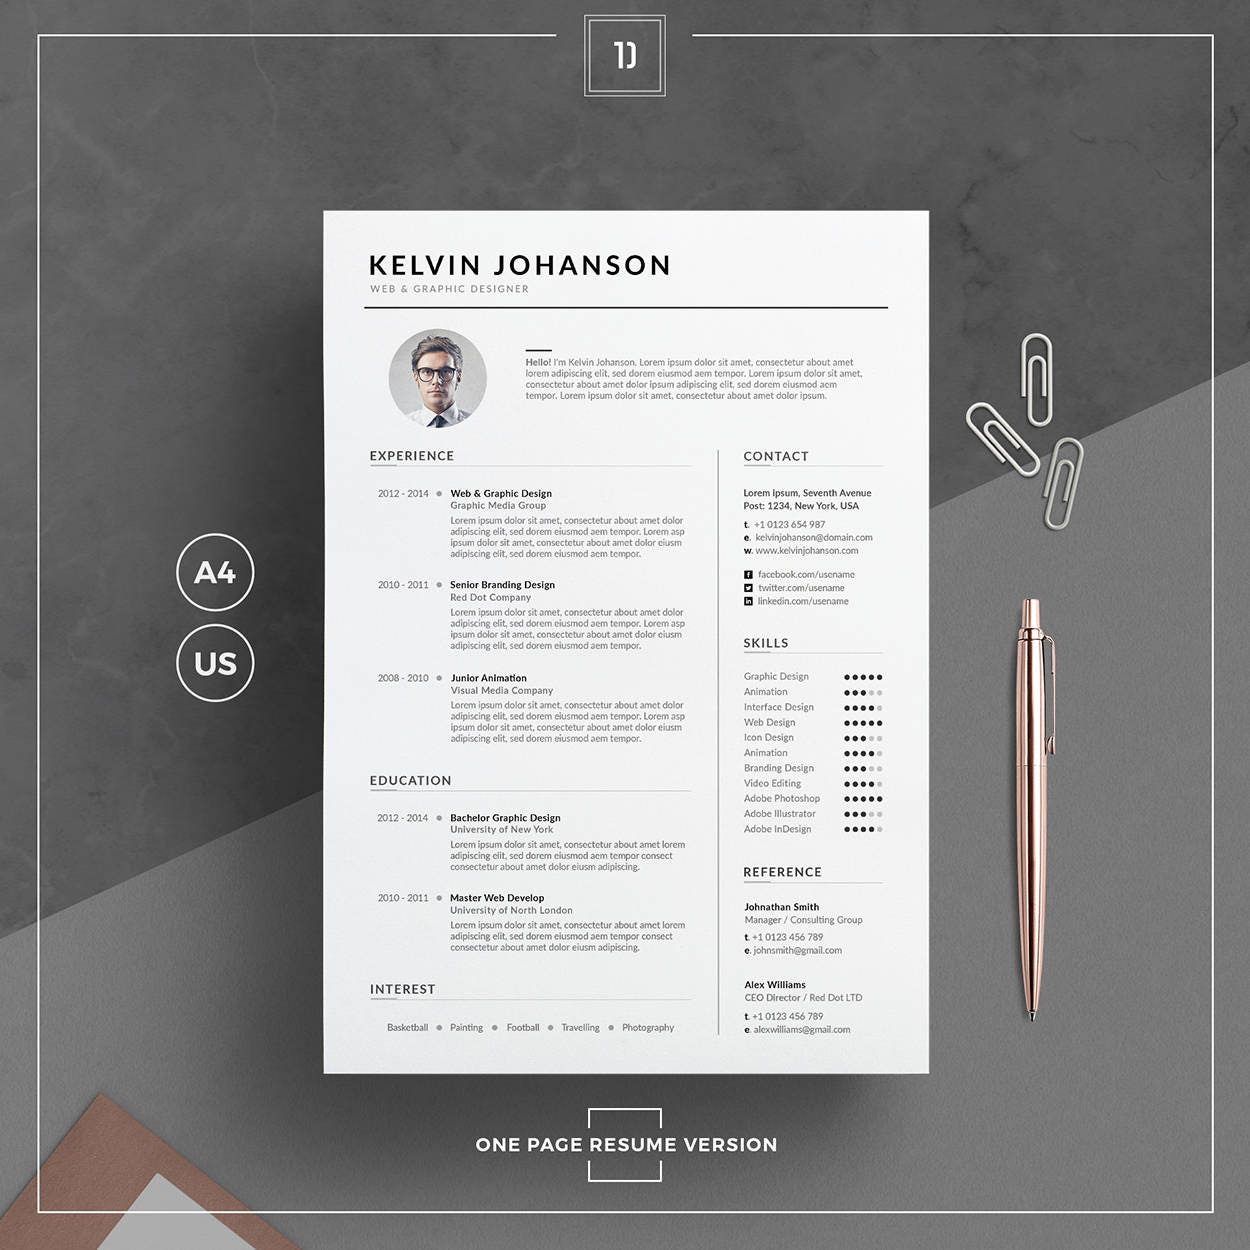 beautiful is it bad to have a two page resume pictures simple